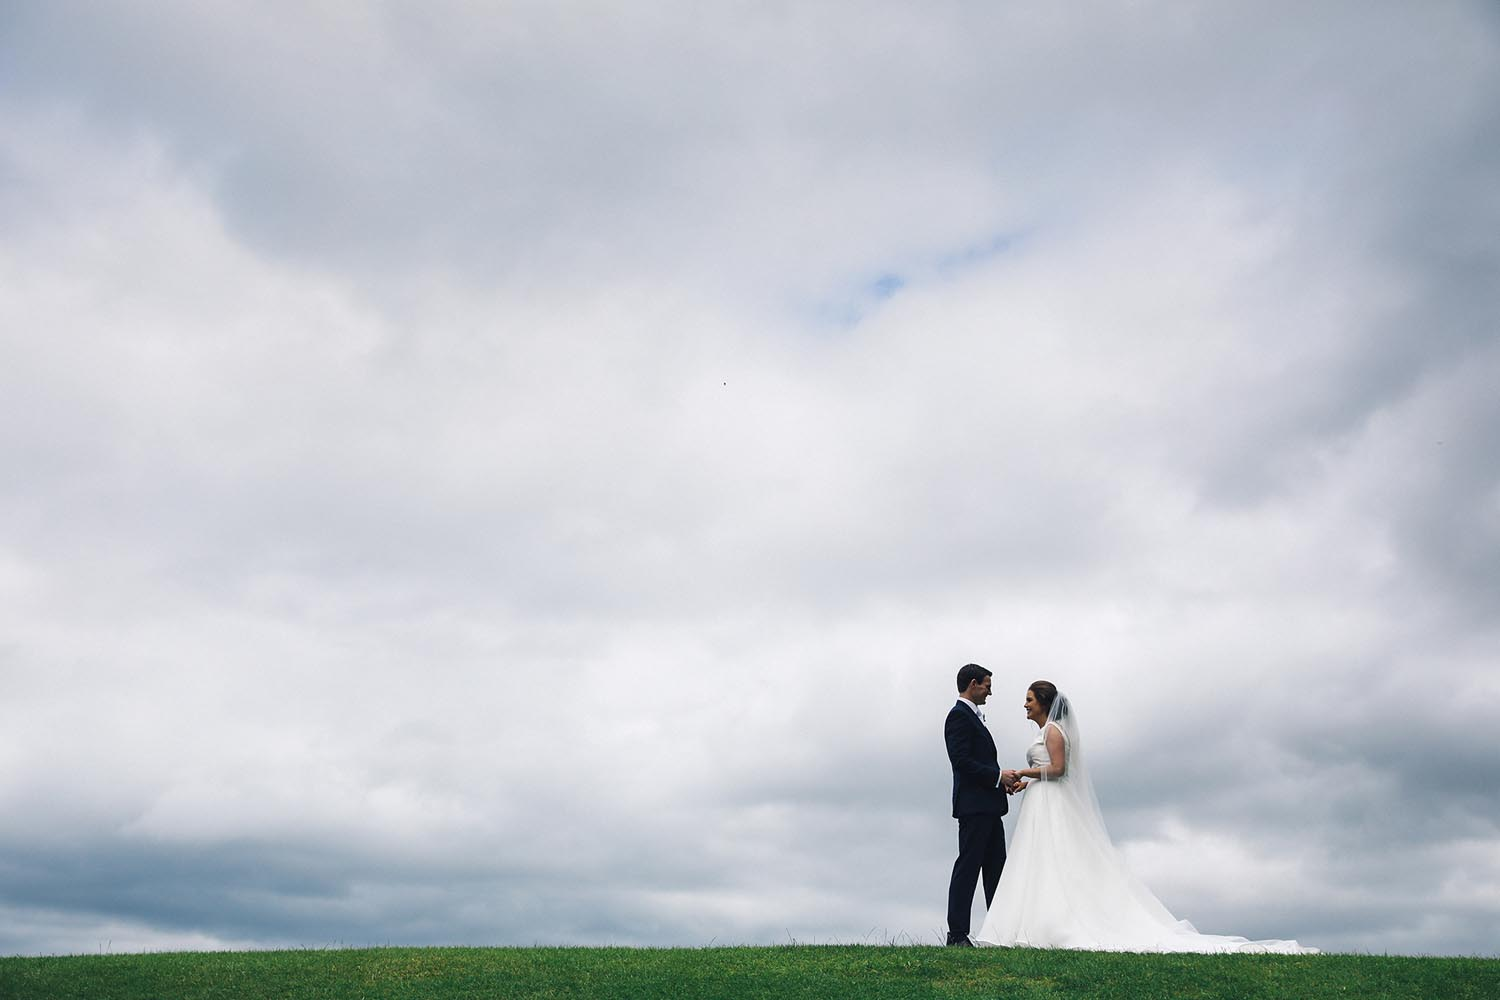 Shot of groom and bride on hill